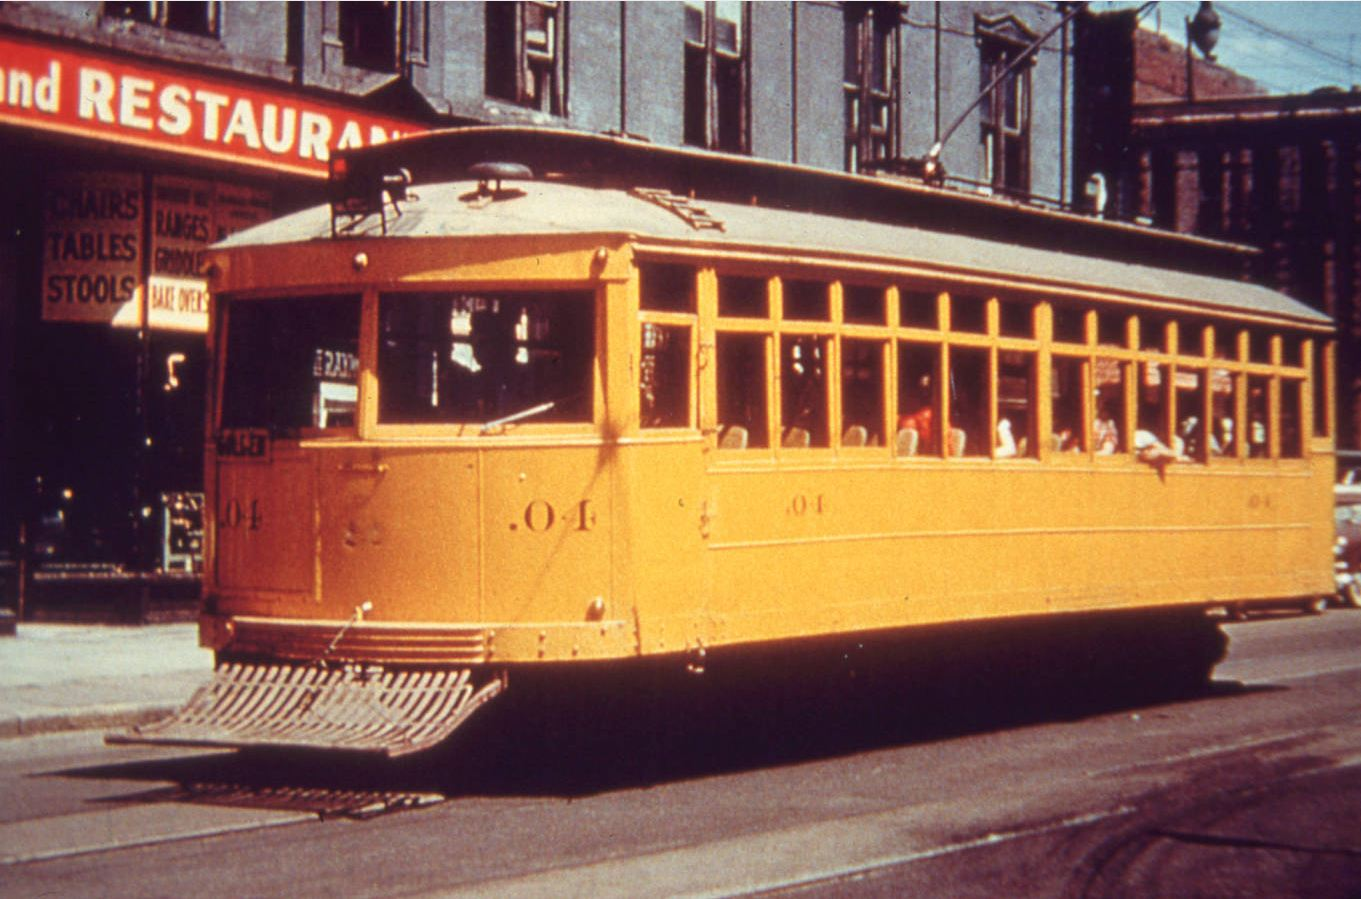 Streetcar No. 4 in 1947, about three years before it was retired.